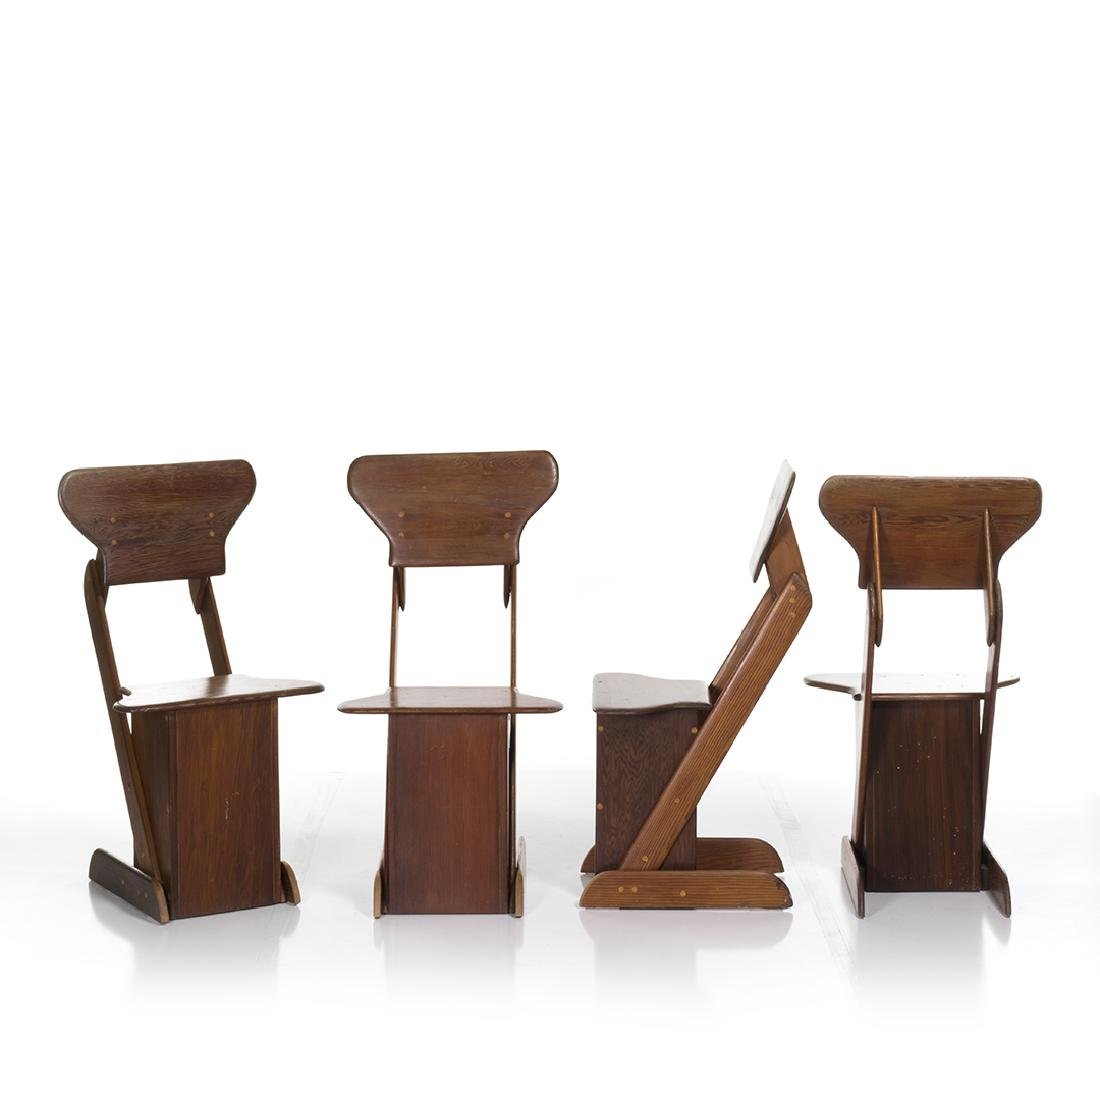 Pine Craft Dining Chairs (4) - 3